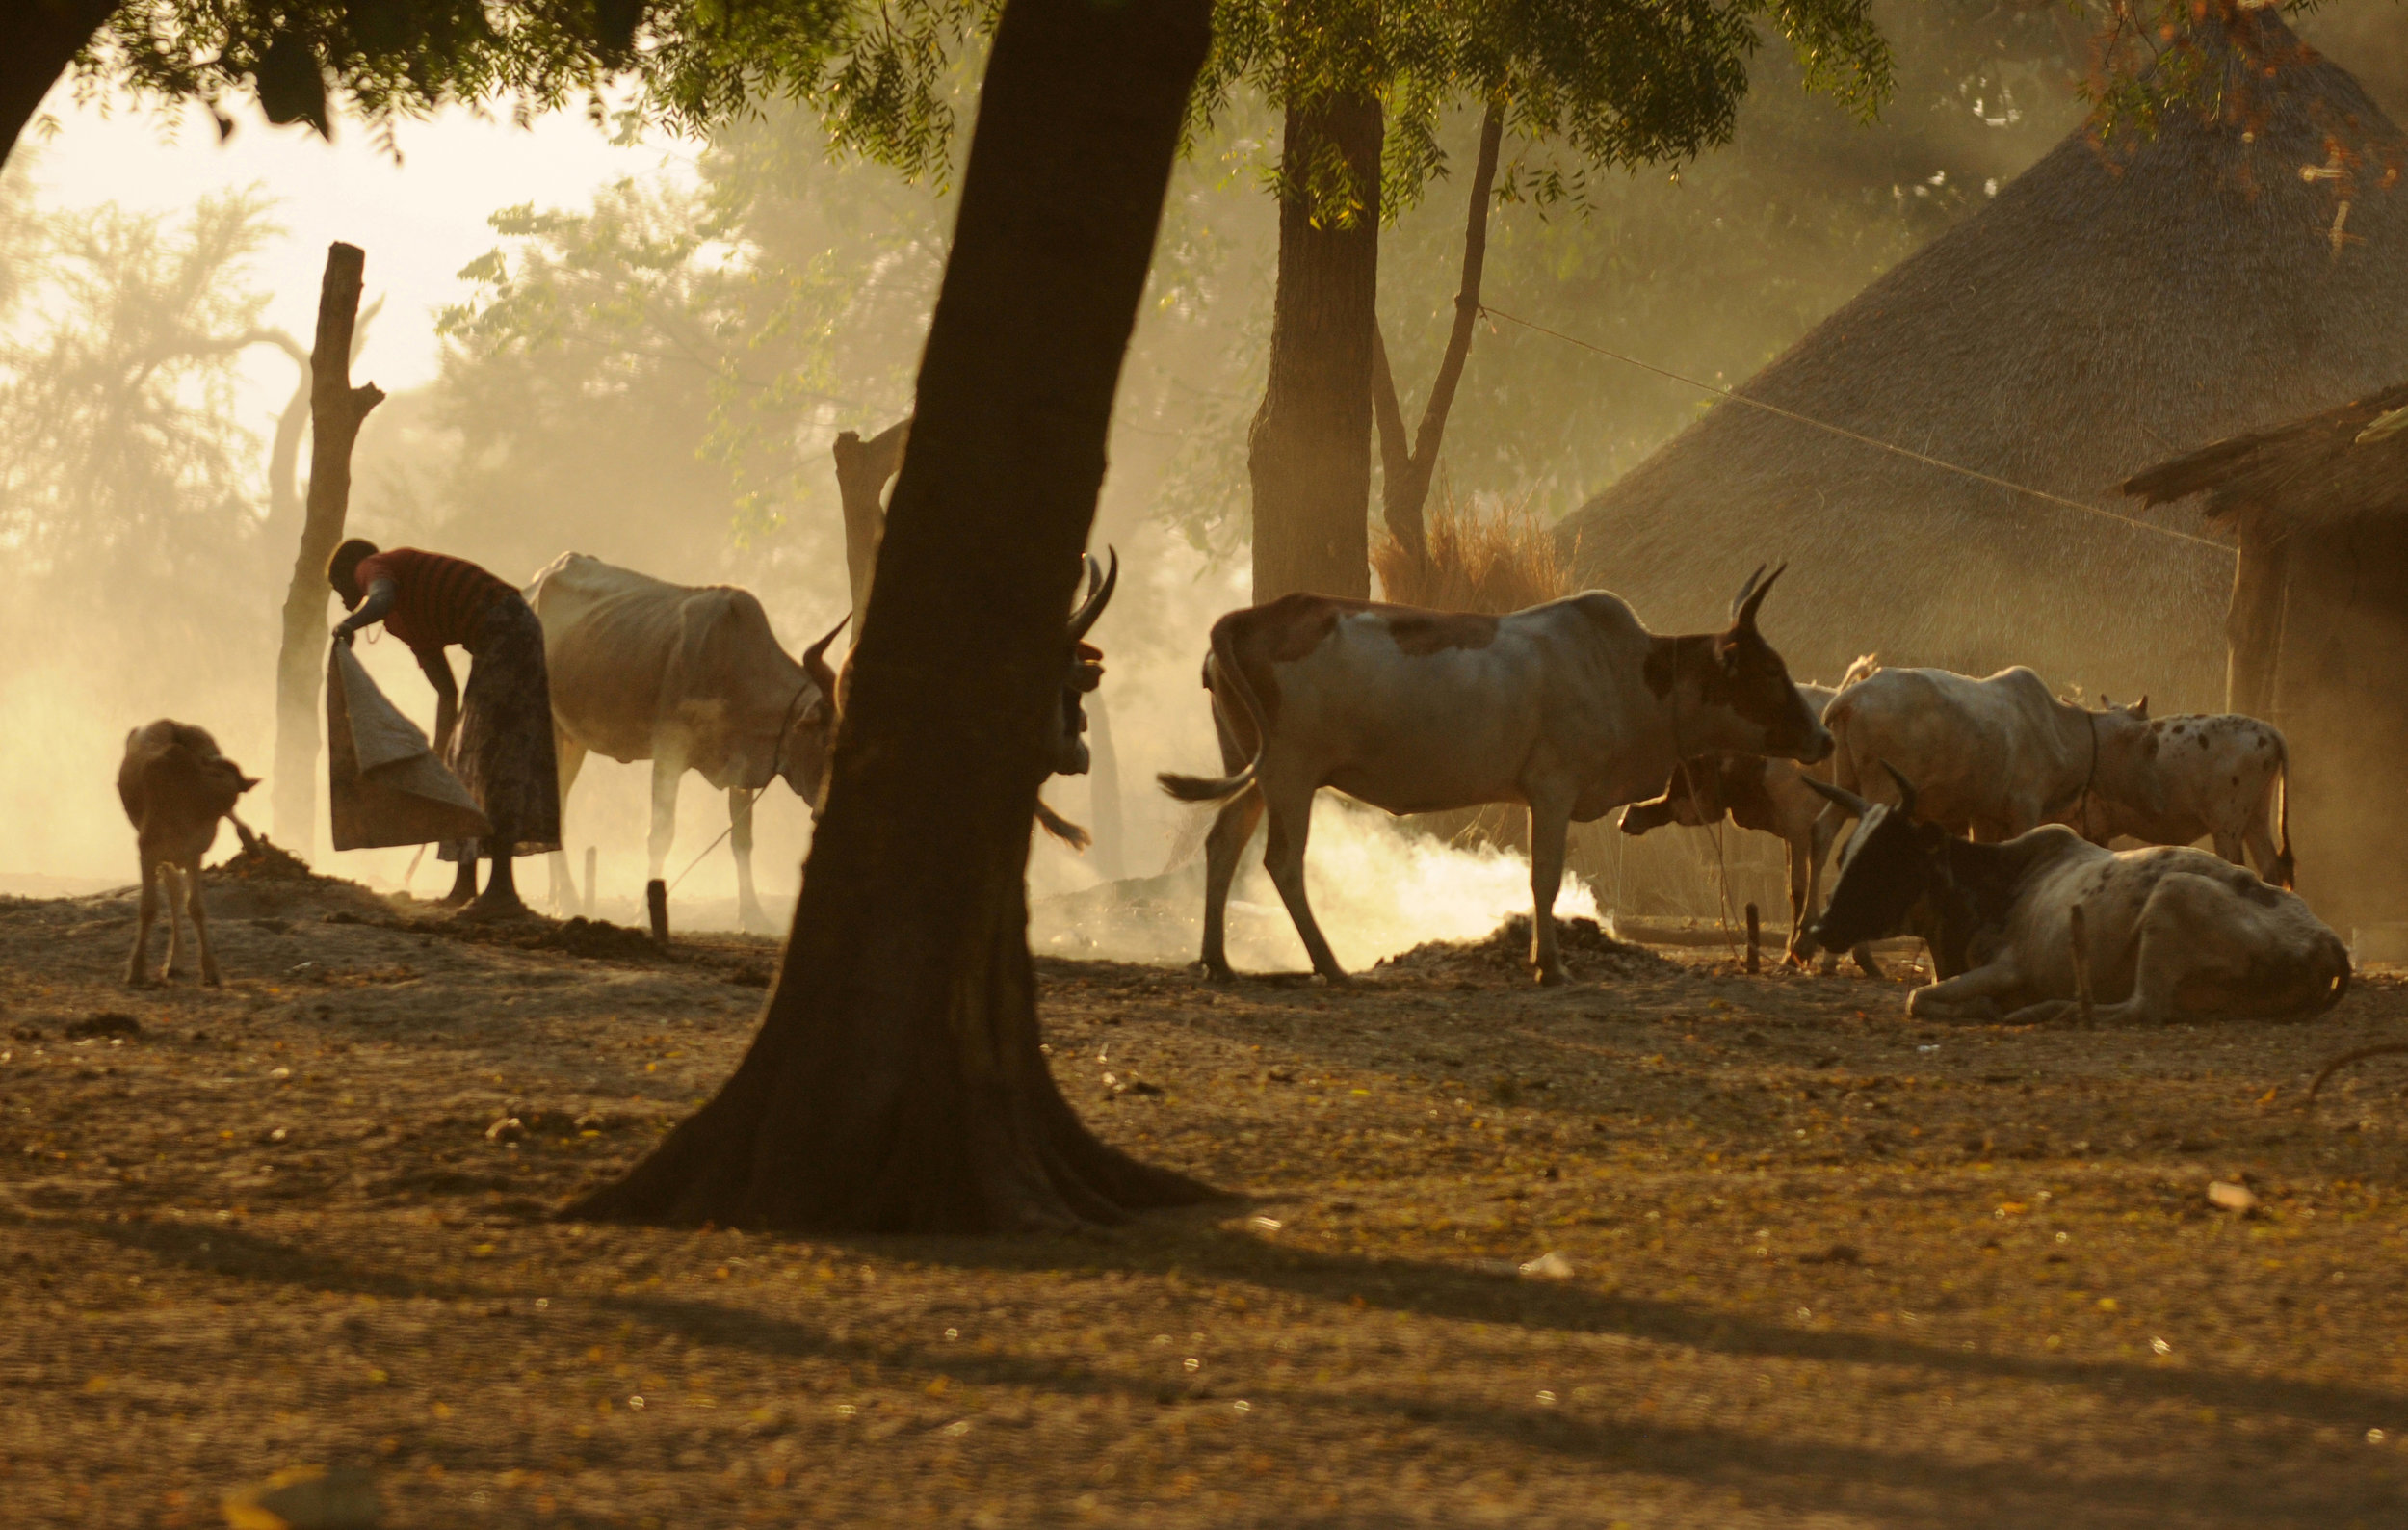 Cows symbolize wealth in South Sudan. Many regions, including Jonglei State, where Duk Payuel exists, are prone to deadly cattle raids by militias.